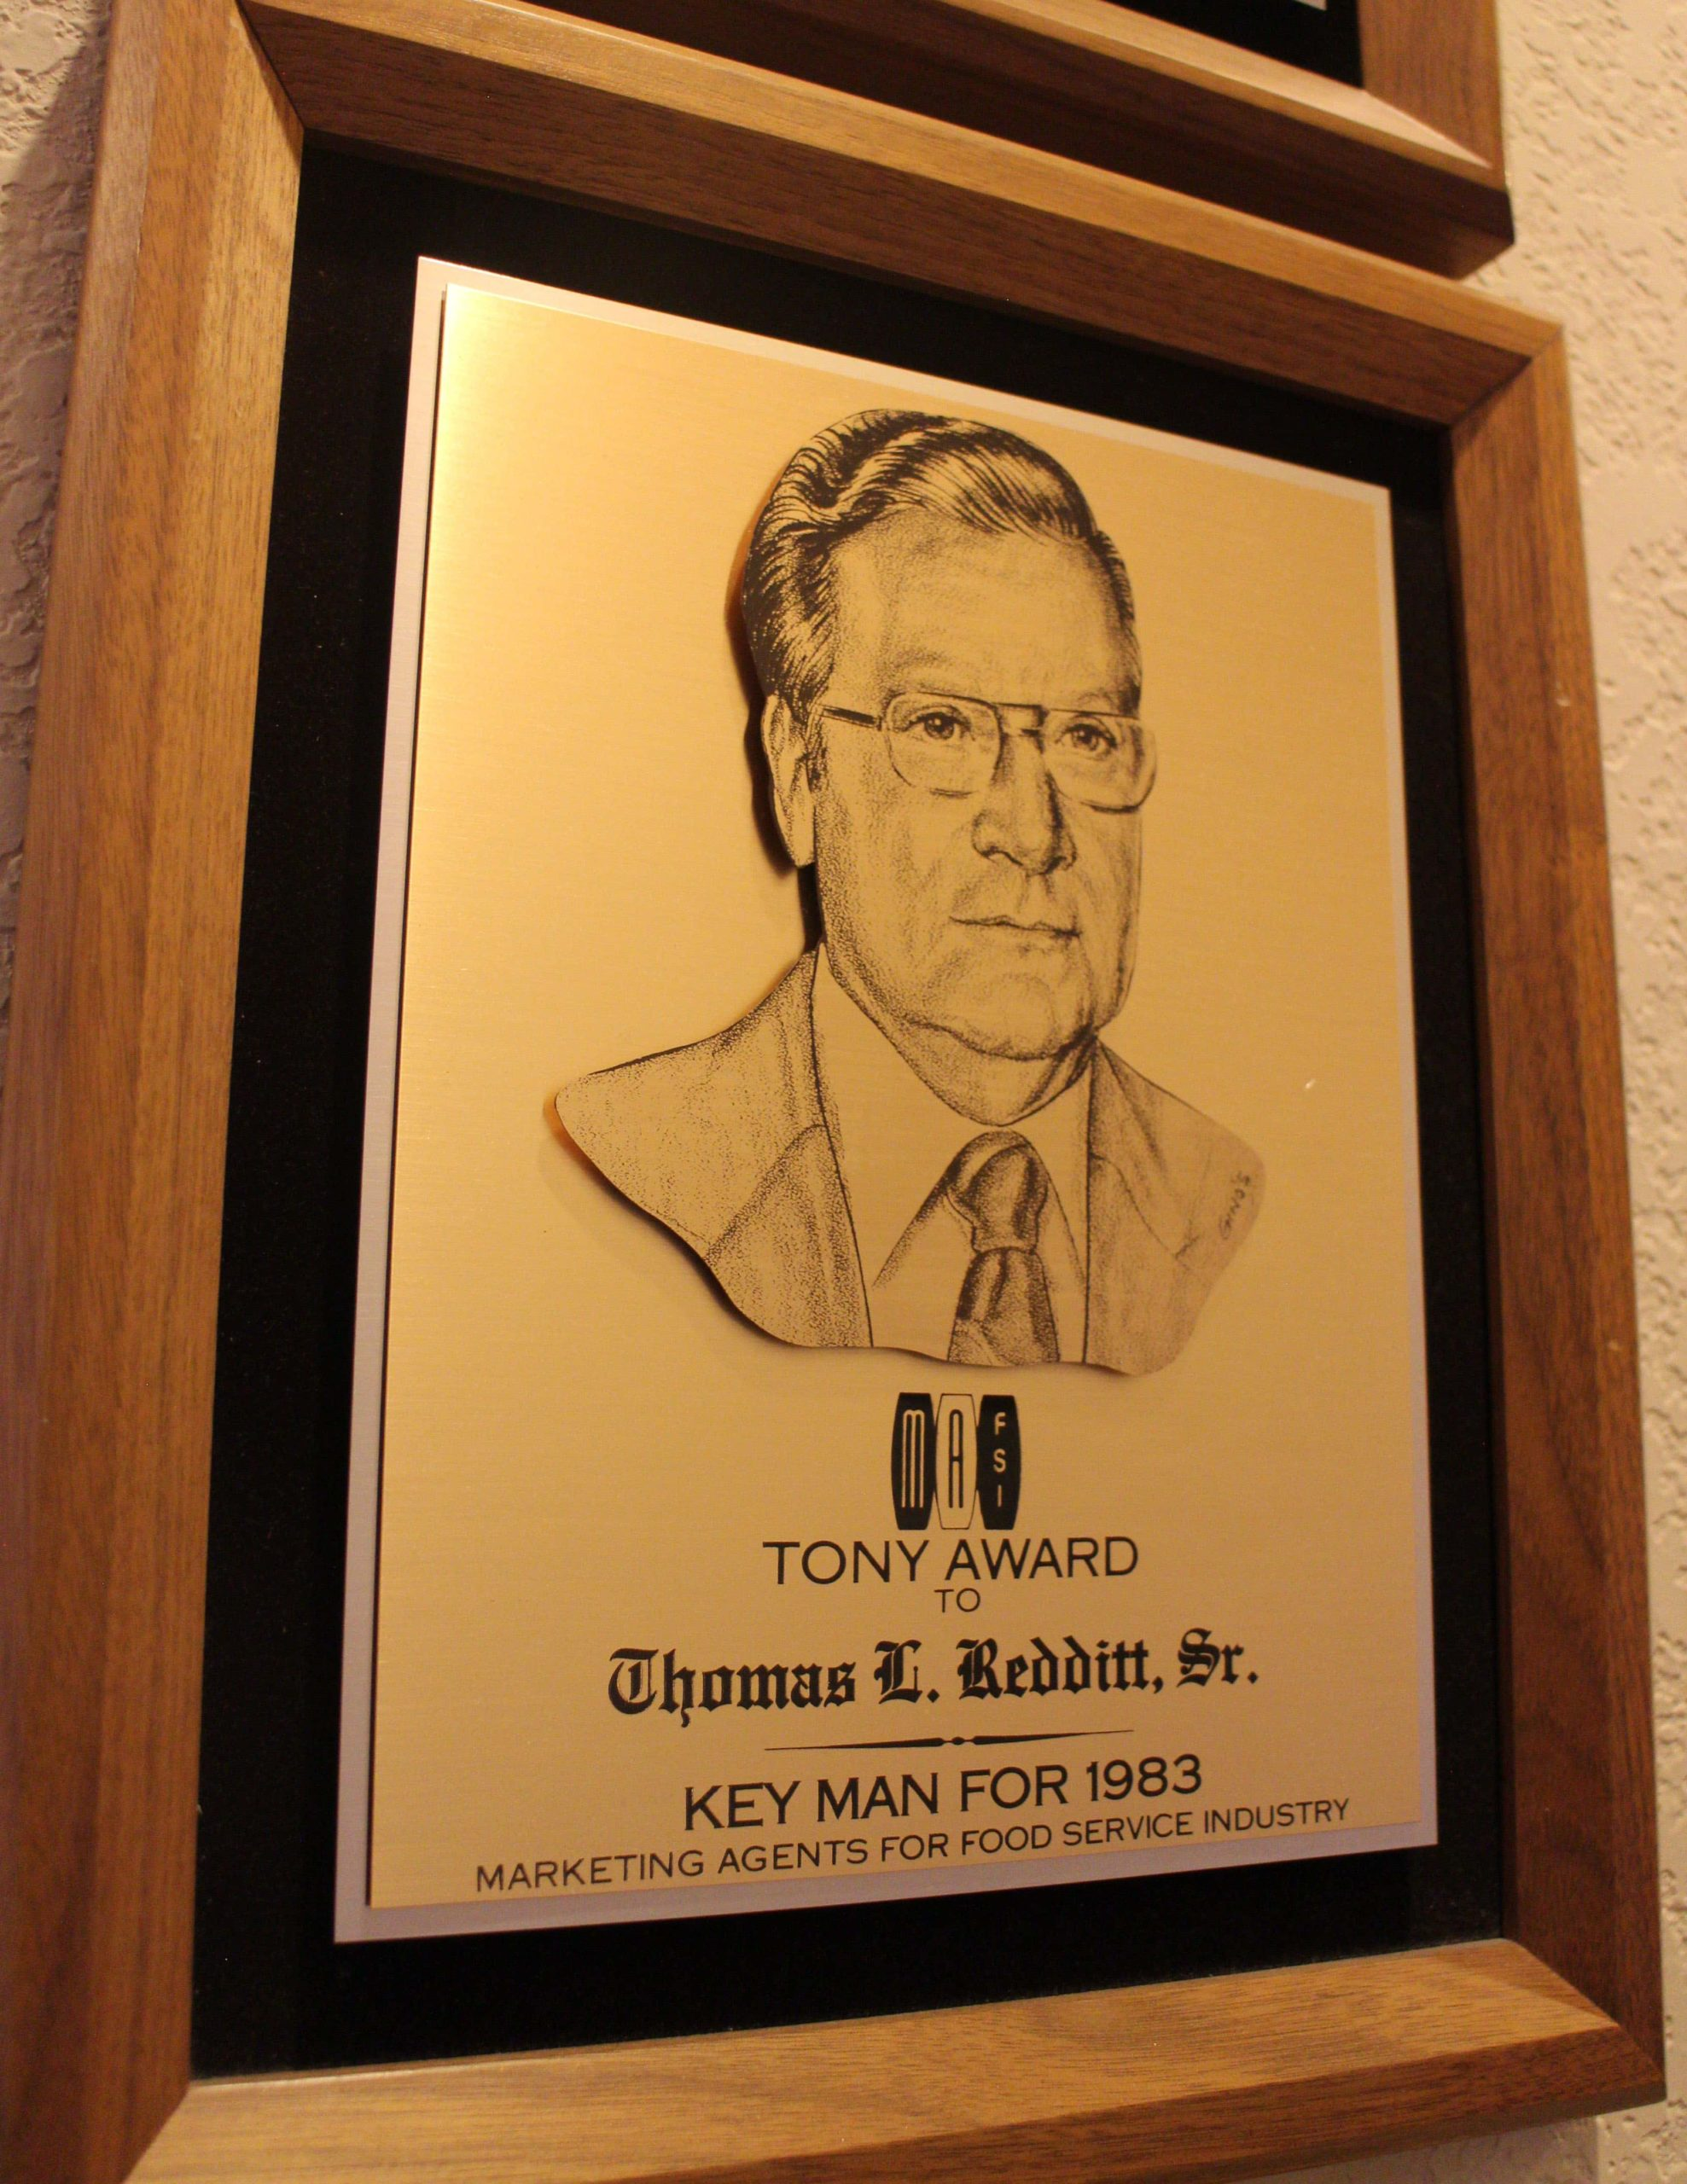 Plaque awarded to Tom Redditt Sr